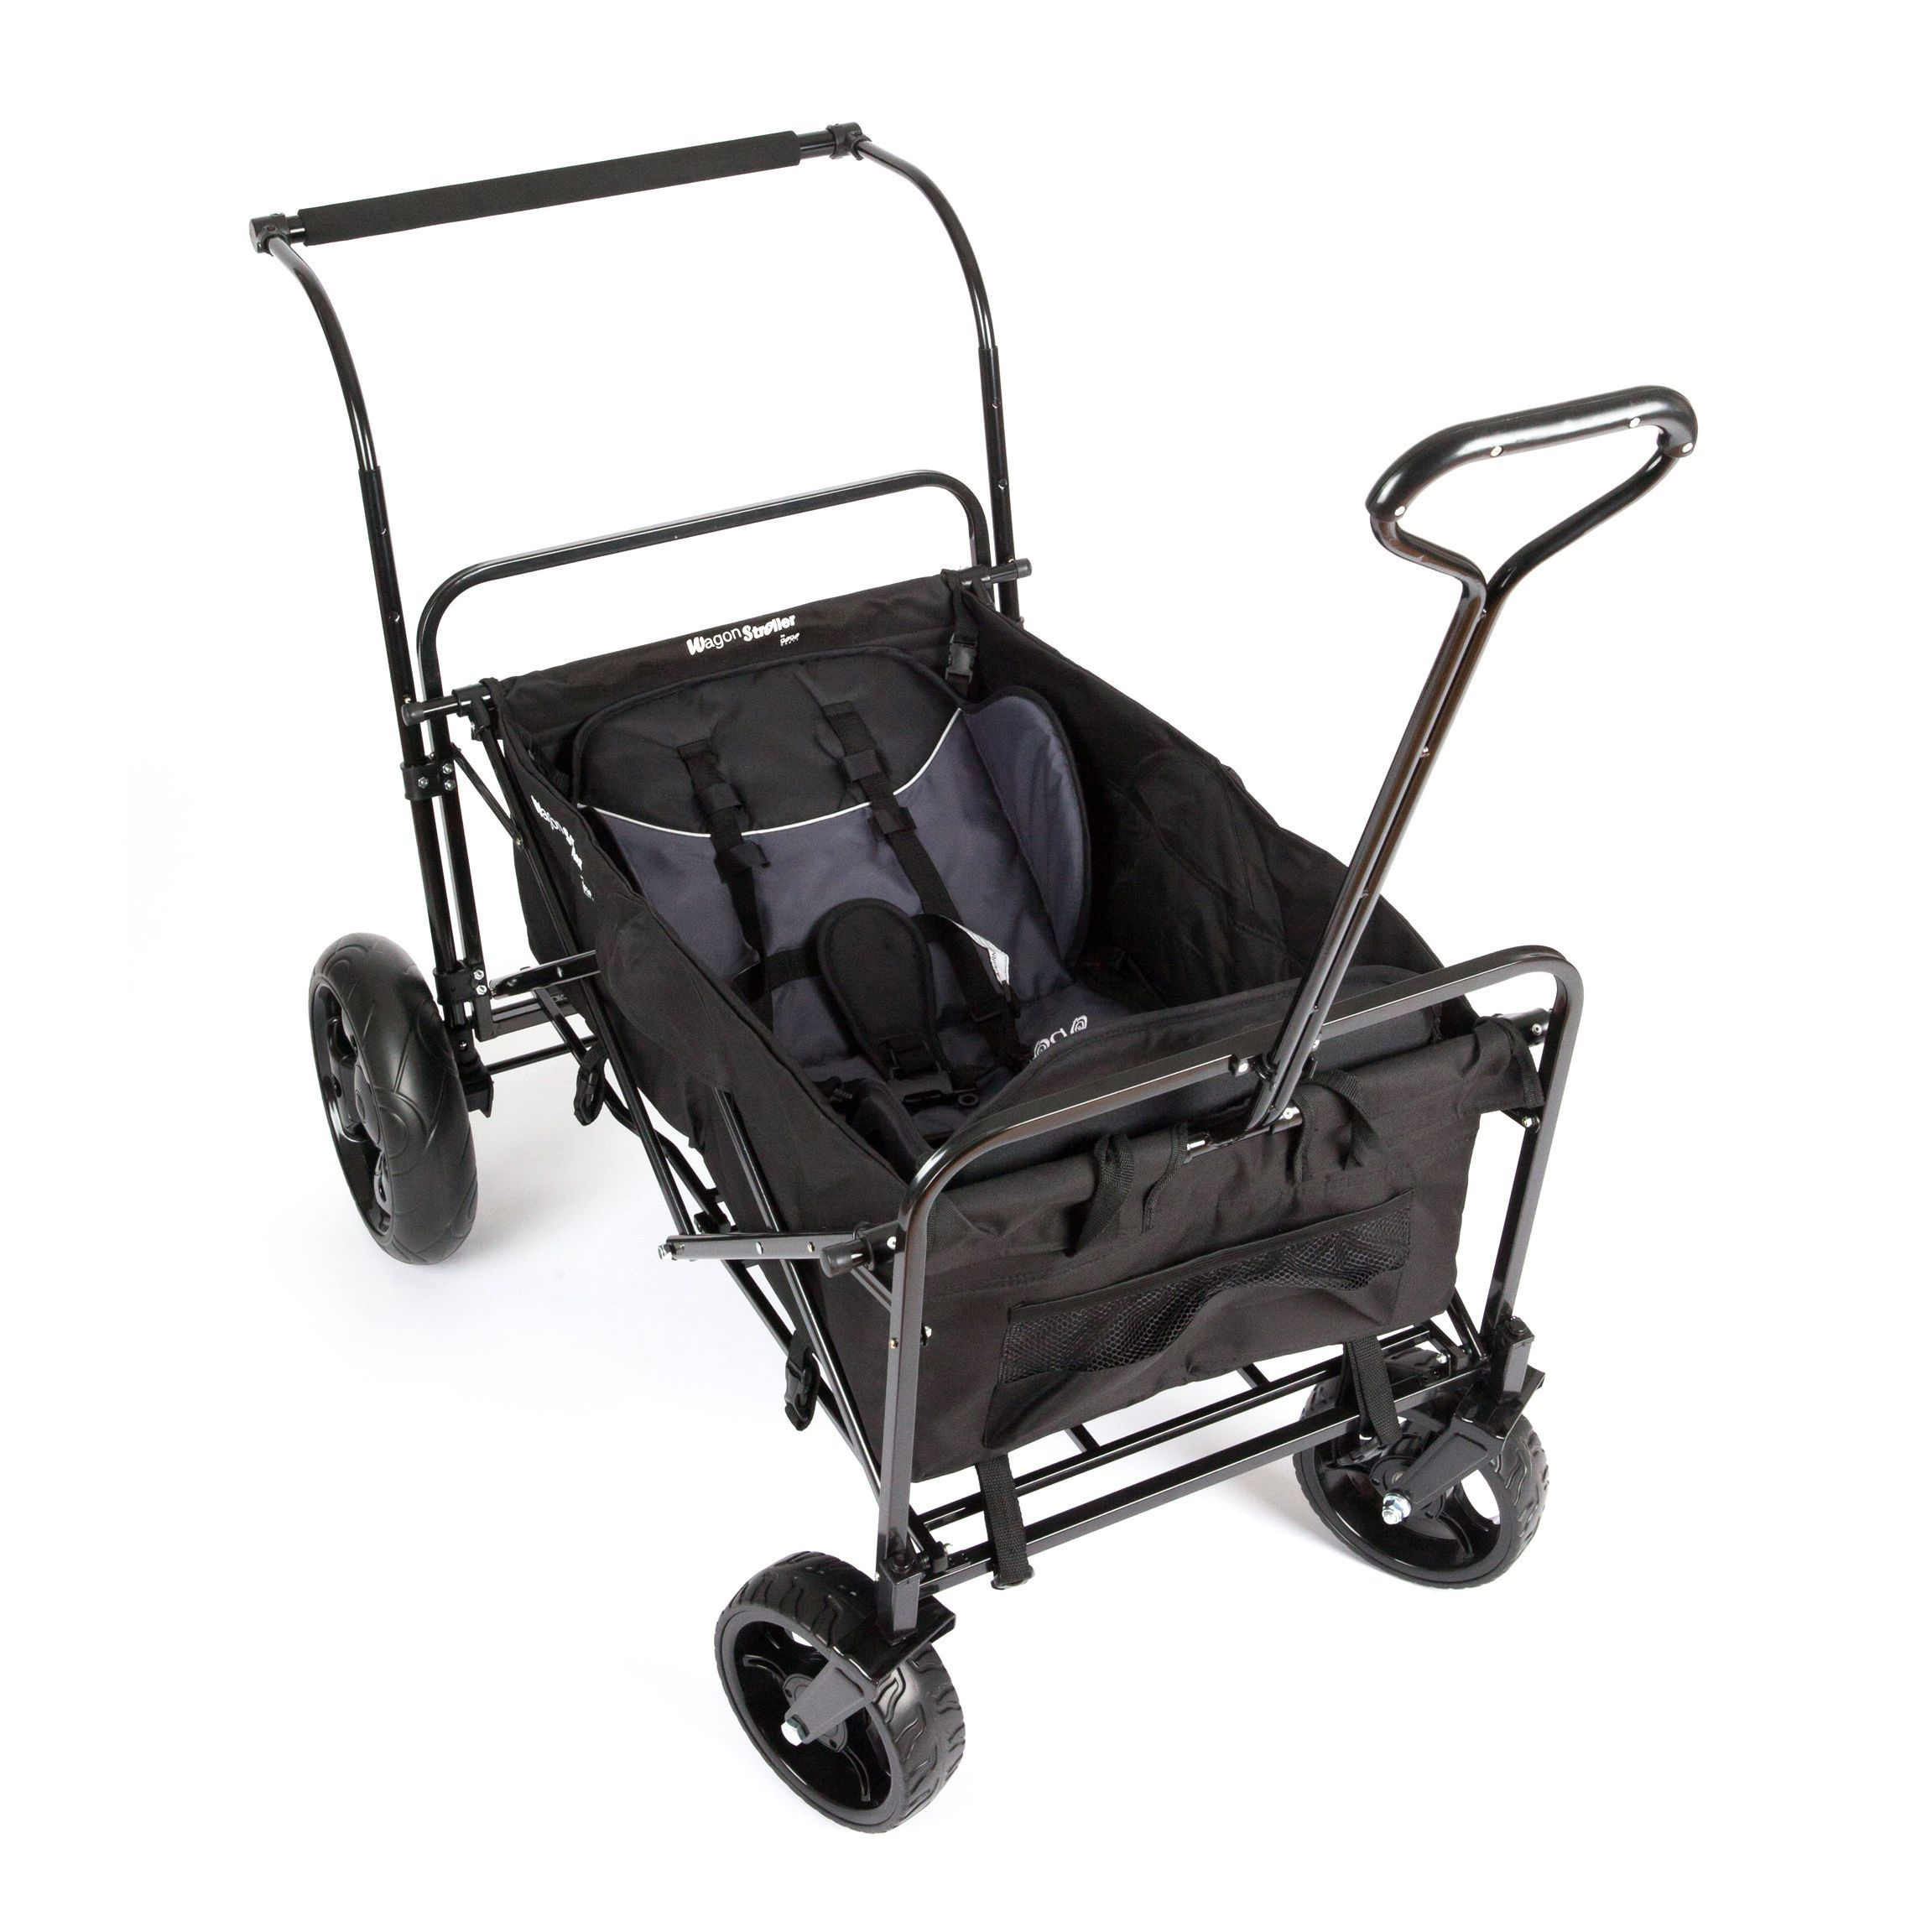 How to Find the Best Stroller for a 3YearOld and Infant